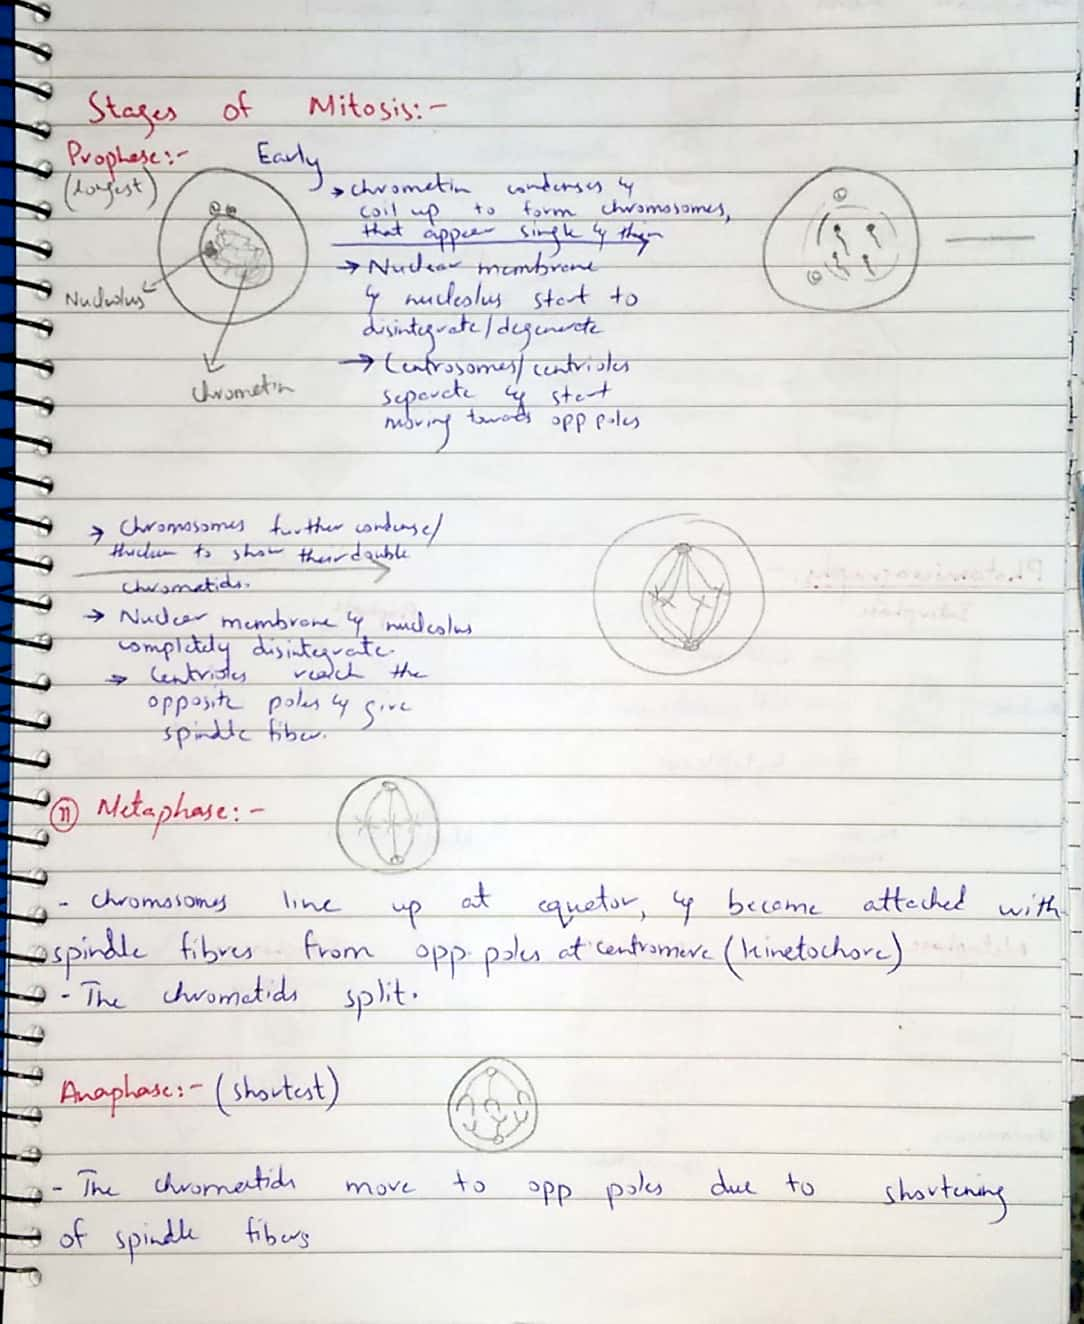 mitotic cycle._5